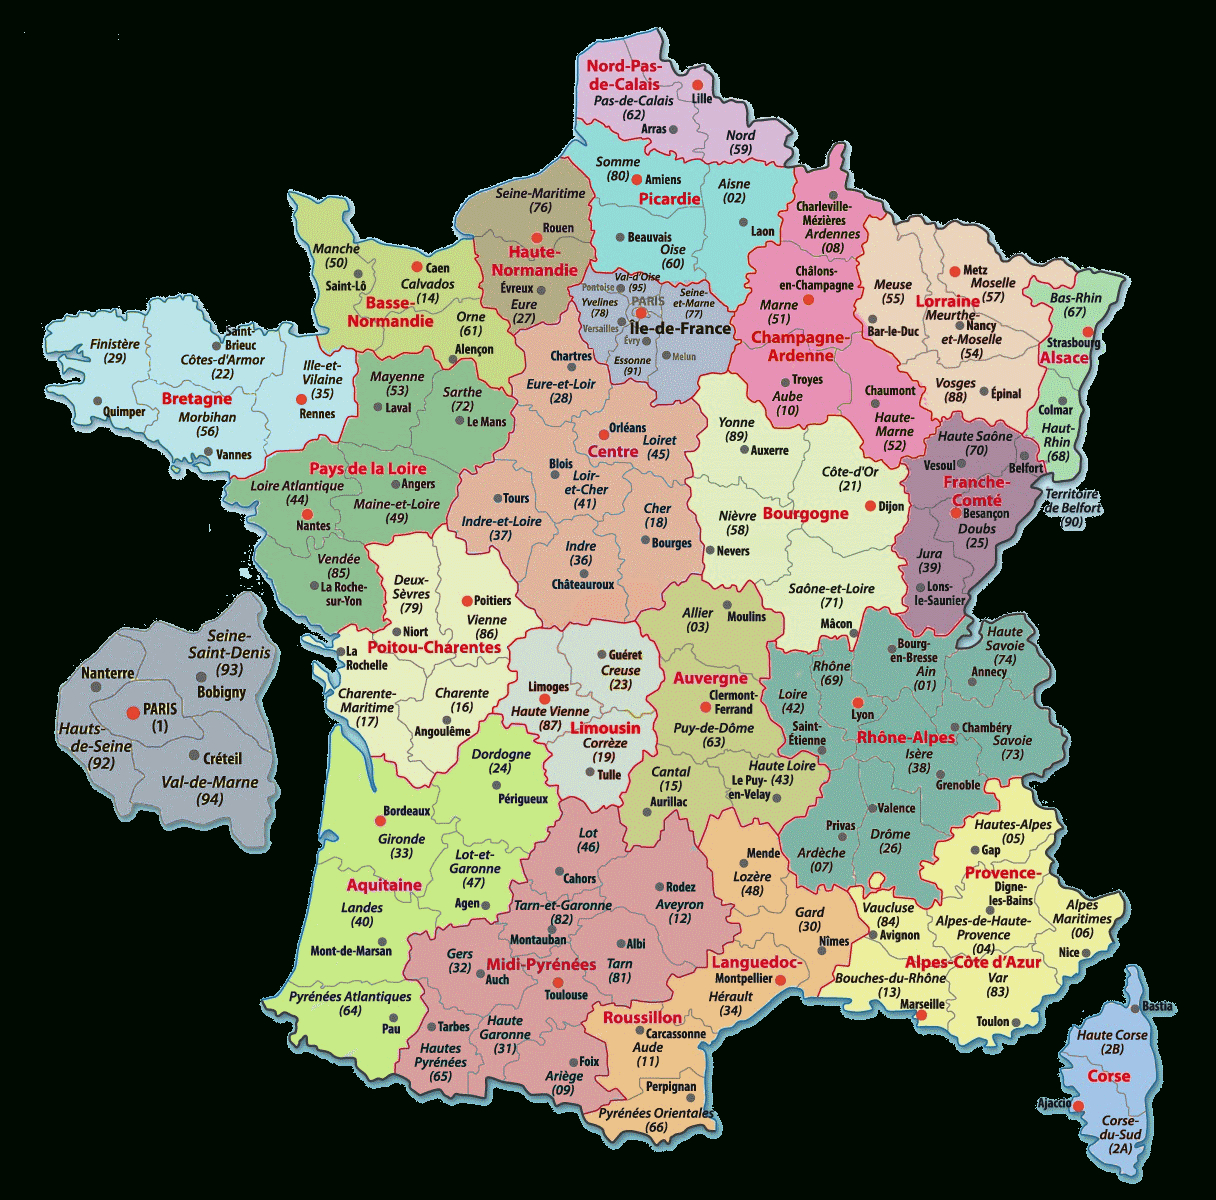 Carte De France Departements : Carte Des Départements De France tout Carte De France Avec Departement A Imprimer